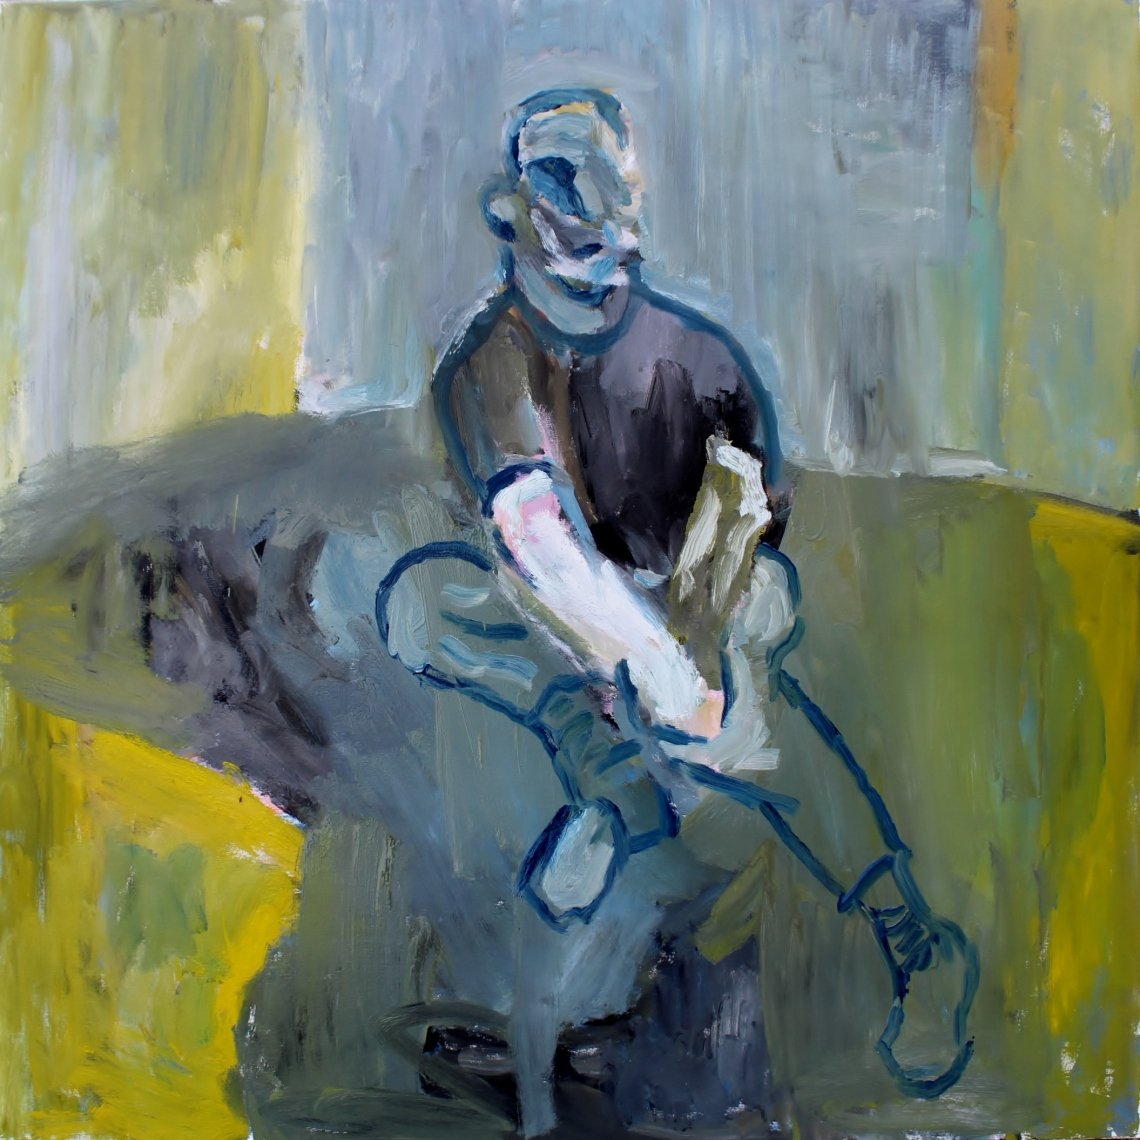 Study for a portrait of Francis Bacon IV as a character in Samuel Beckett's Waiting for Godot wip